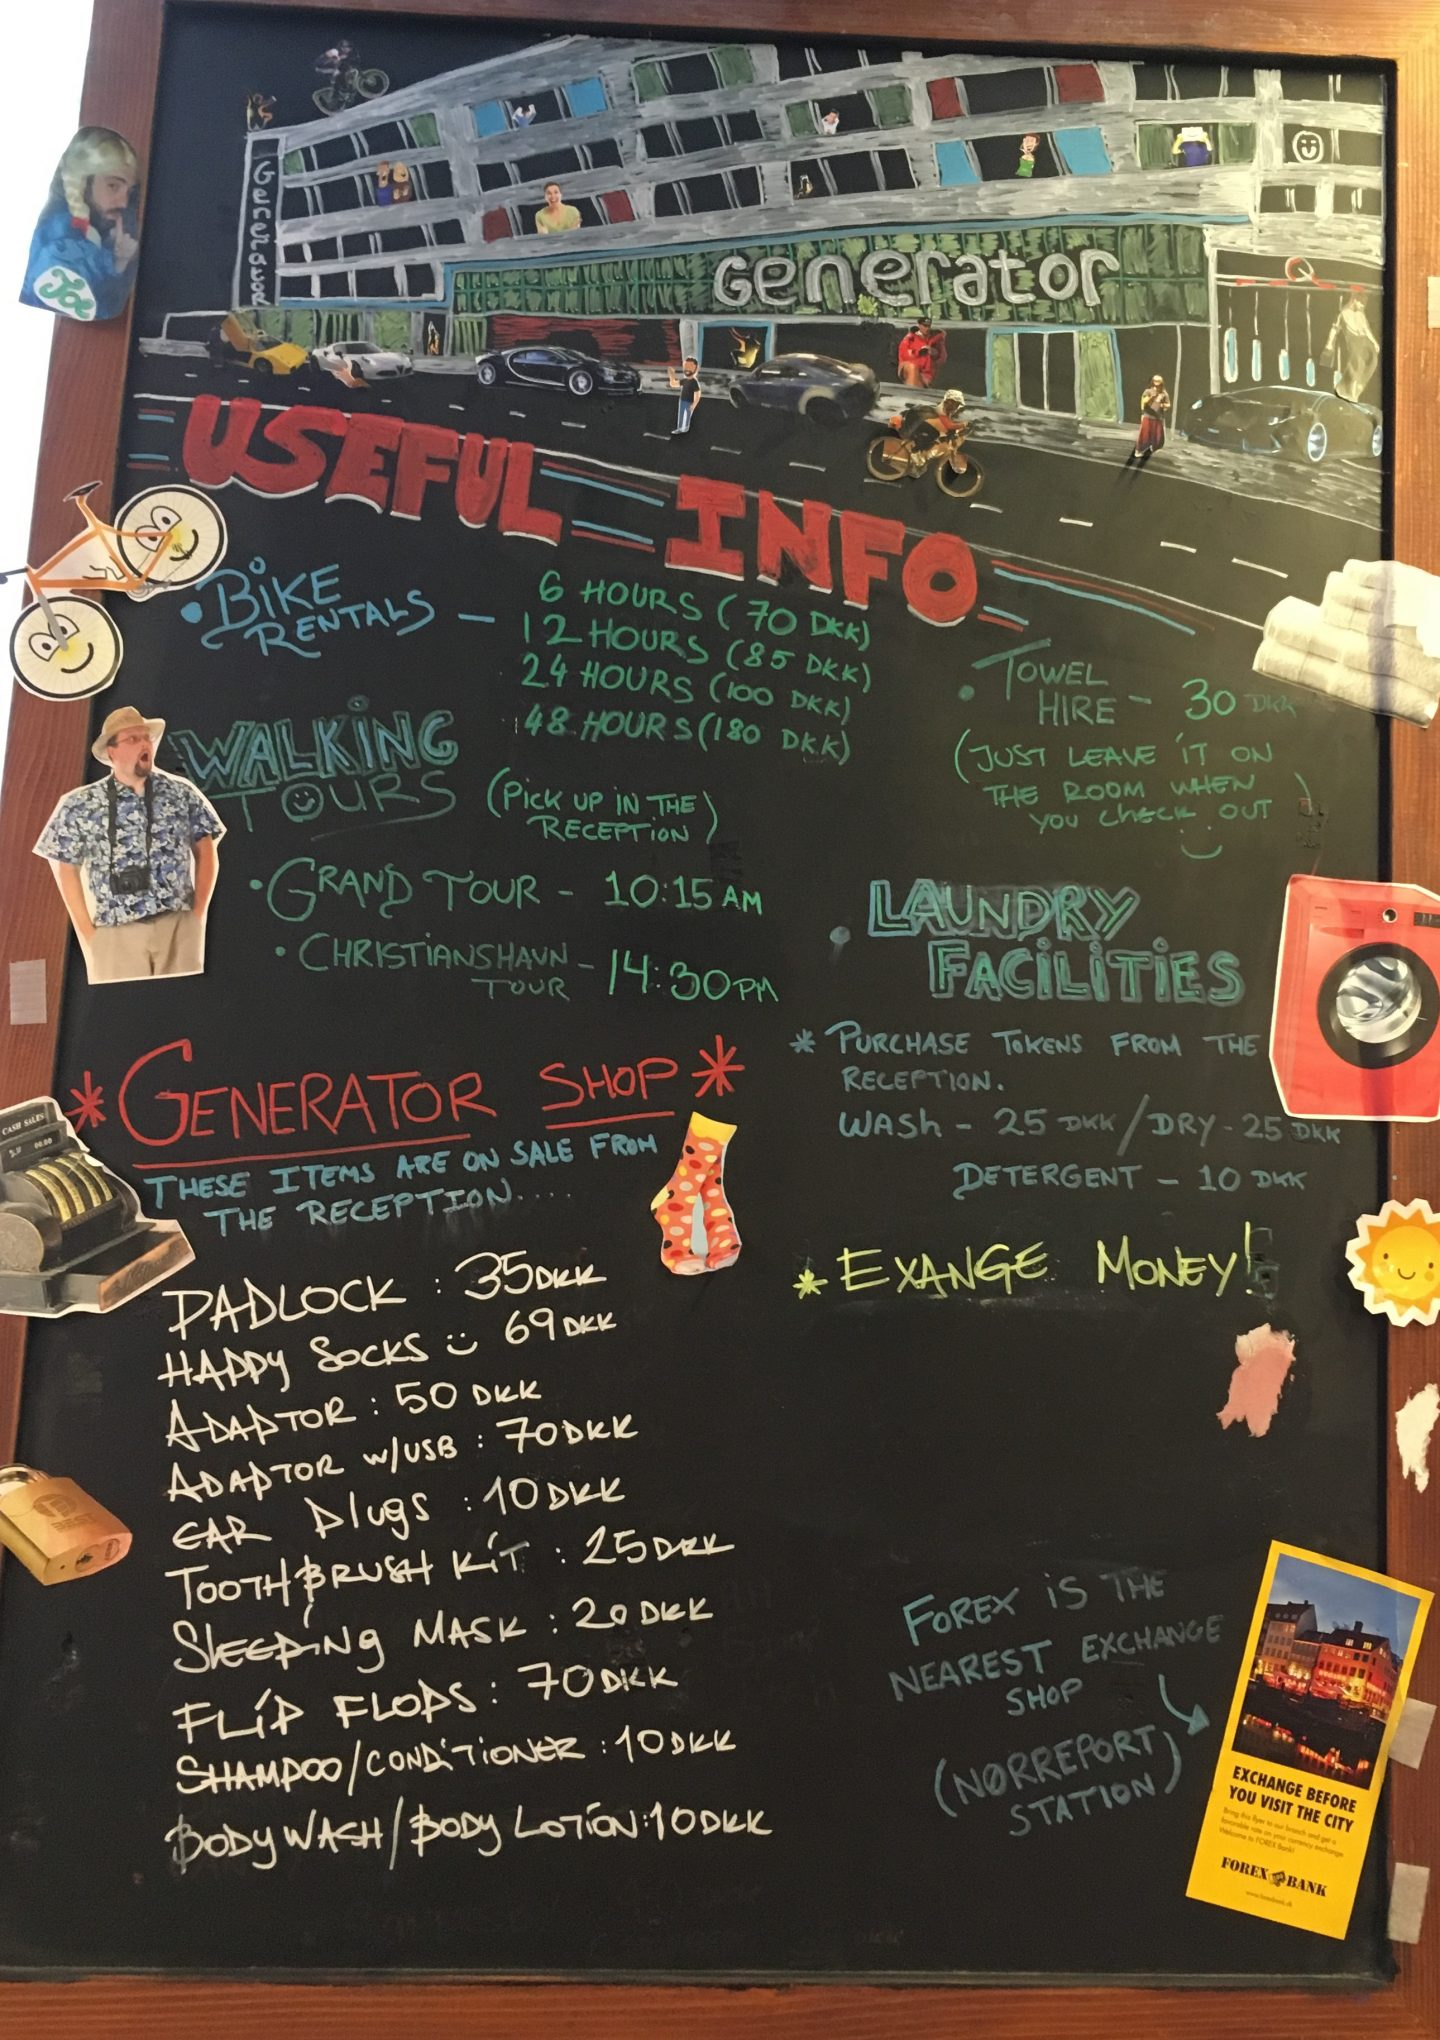 Youth hostel information board